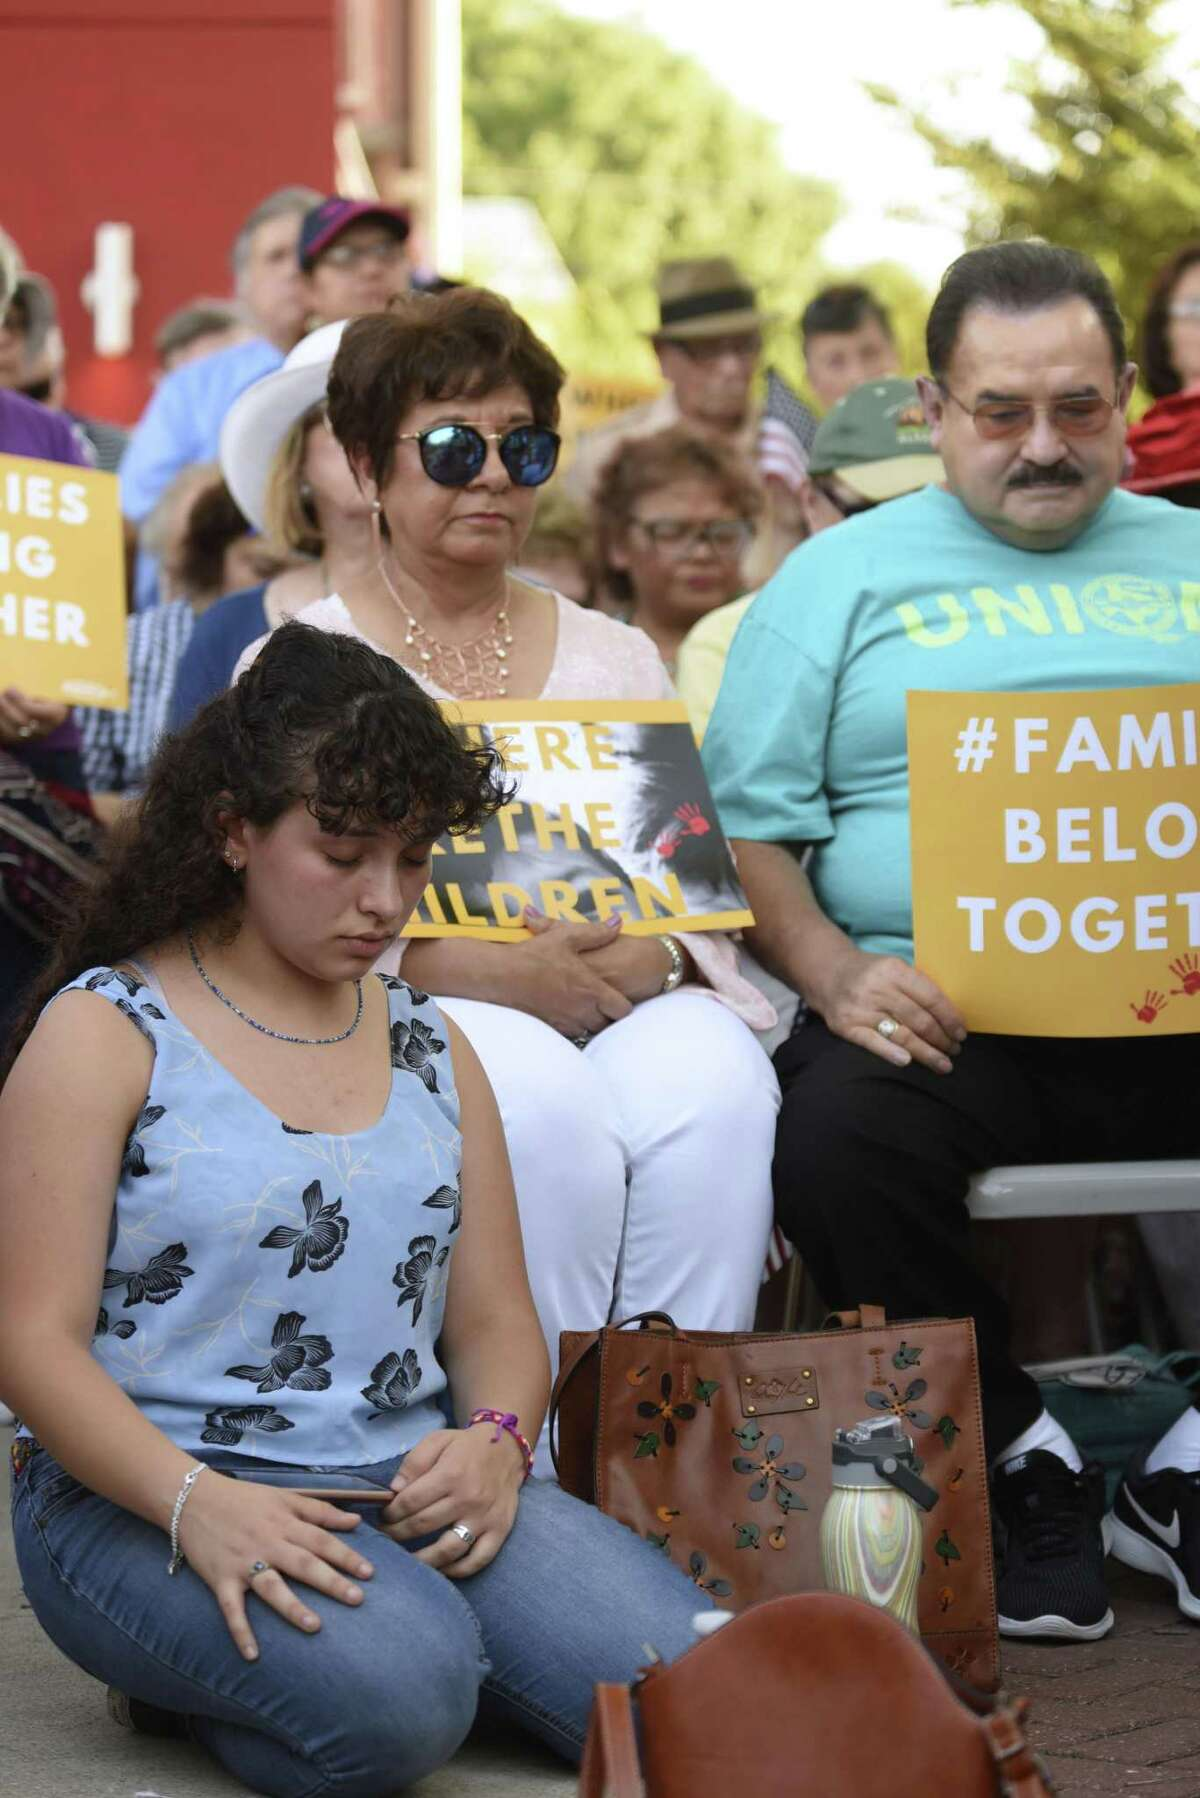 People pray during a rally in support of immigrant children and families, led by U.S. Rep. Joaquin Castro, the Texas Organizing Project, MALC, RAICES and other groups, at the Guadalupe Cultural Center on Thursday, May 31, 2018.